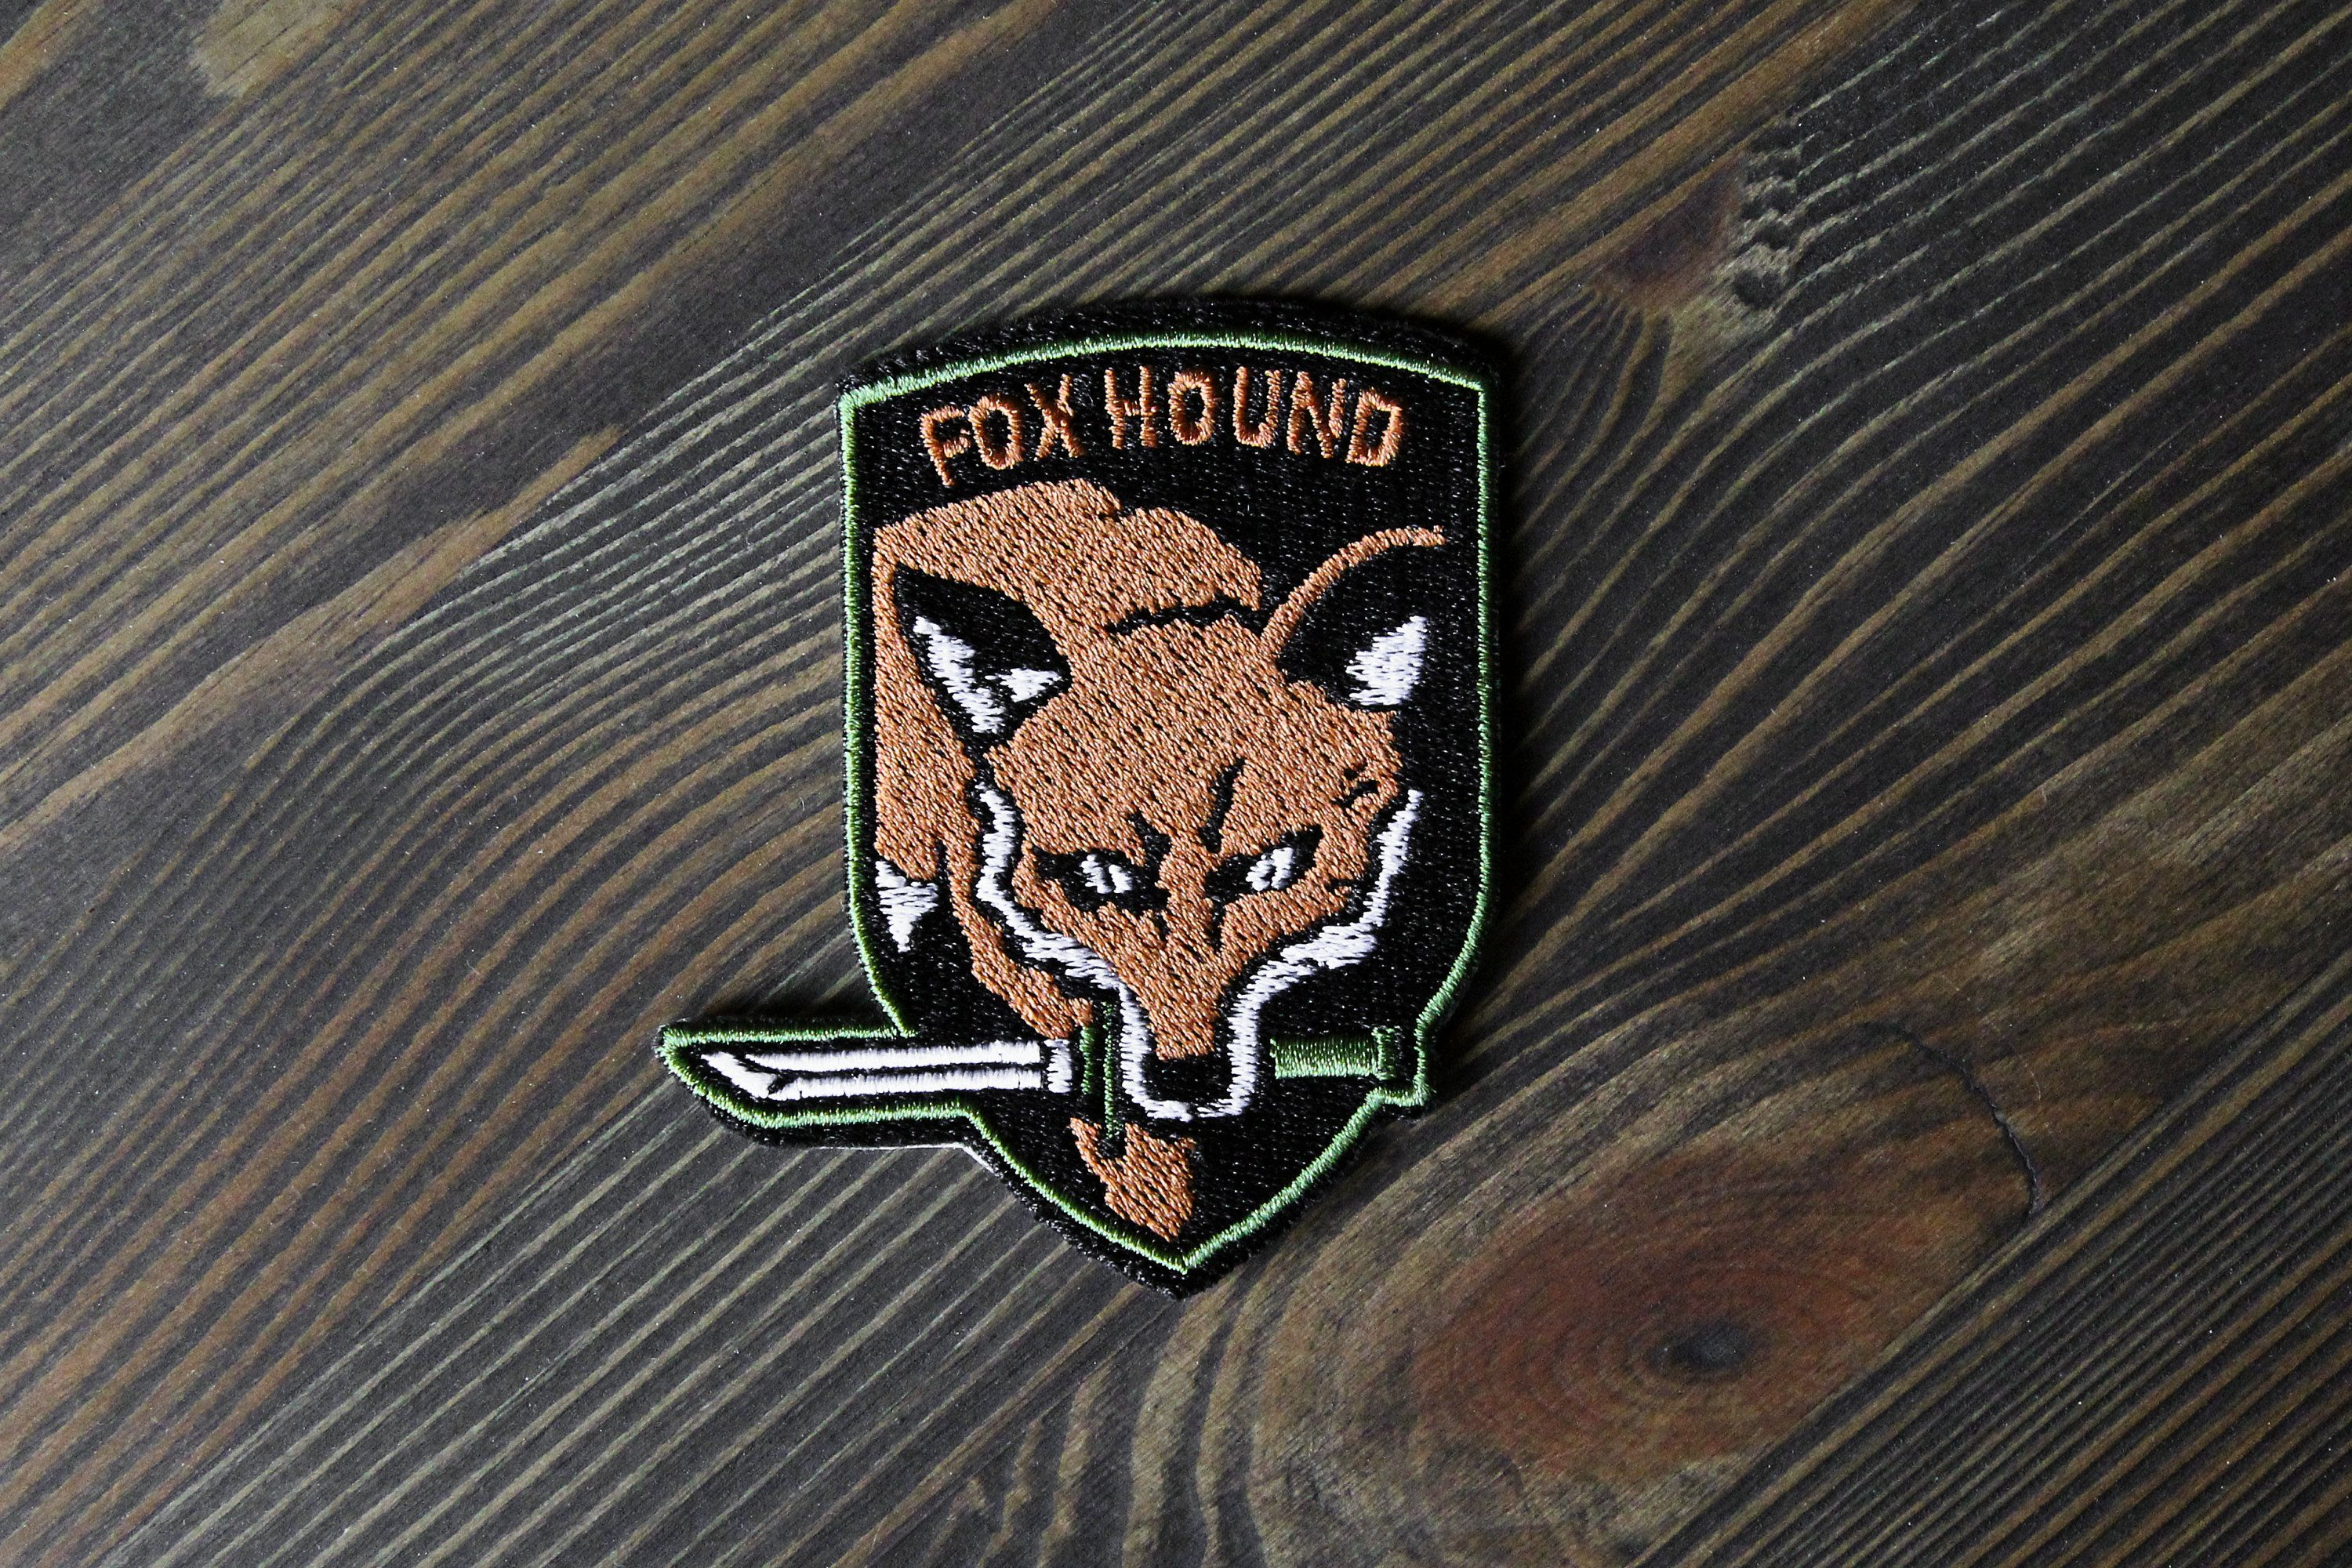 Fox Hound Patch Gift For The Metal Gear Solid Video Game Etsy Metal Gear Metal Gear Solid The Fox And The Hound